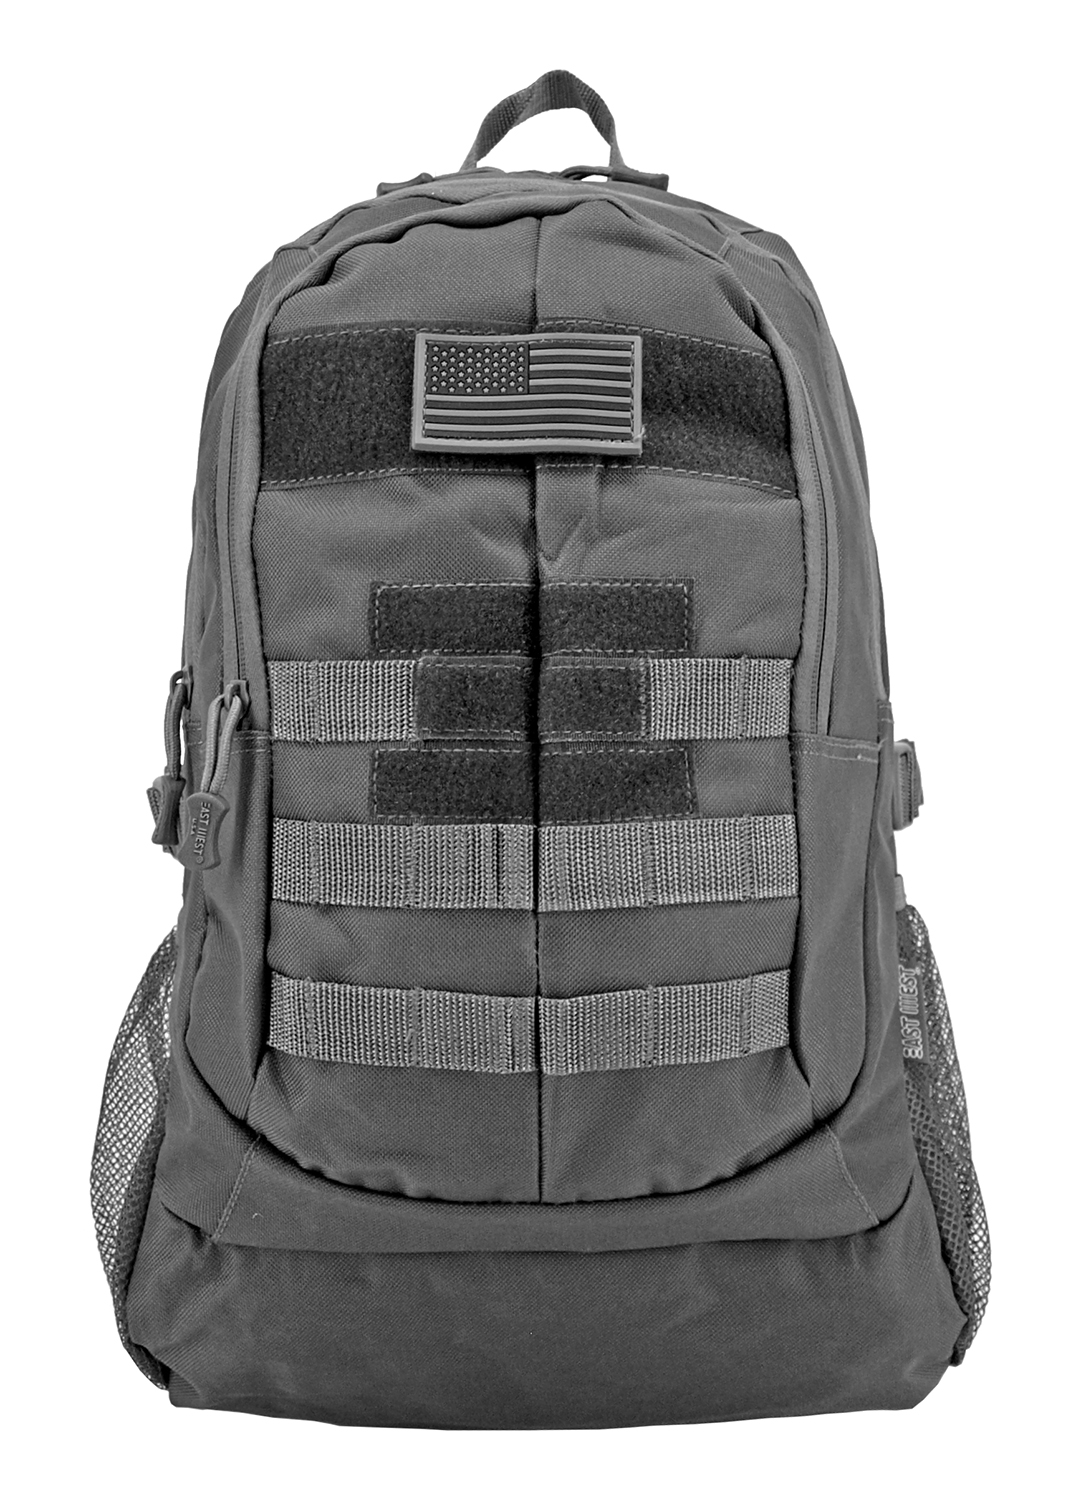 Tactical All-Terrain Backpack - Grey